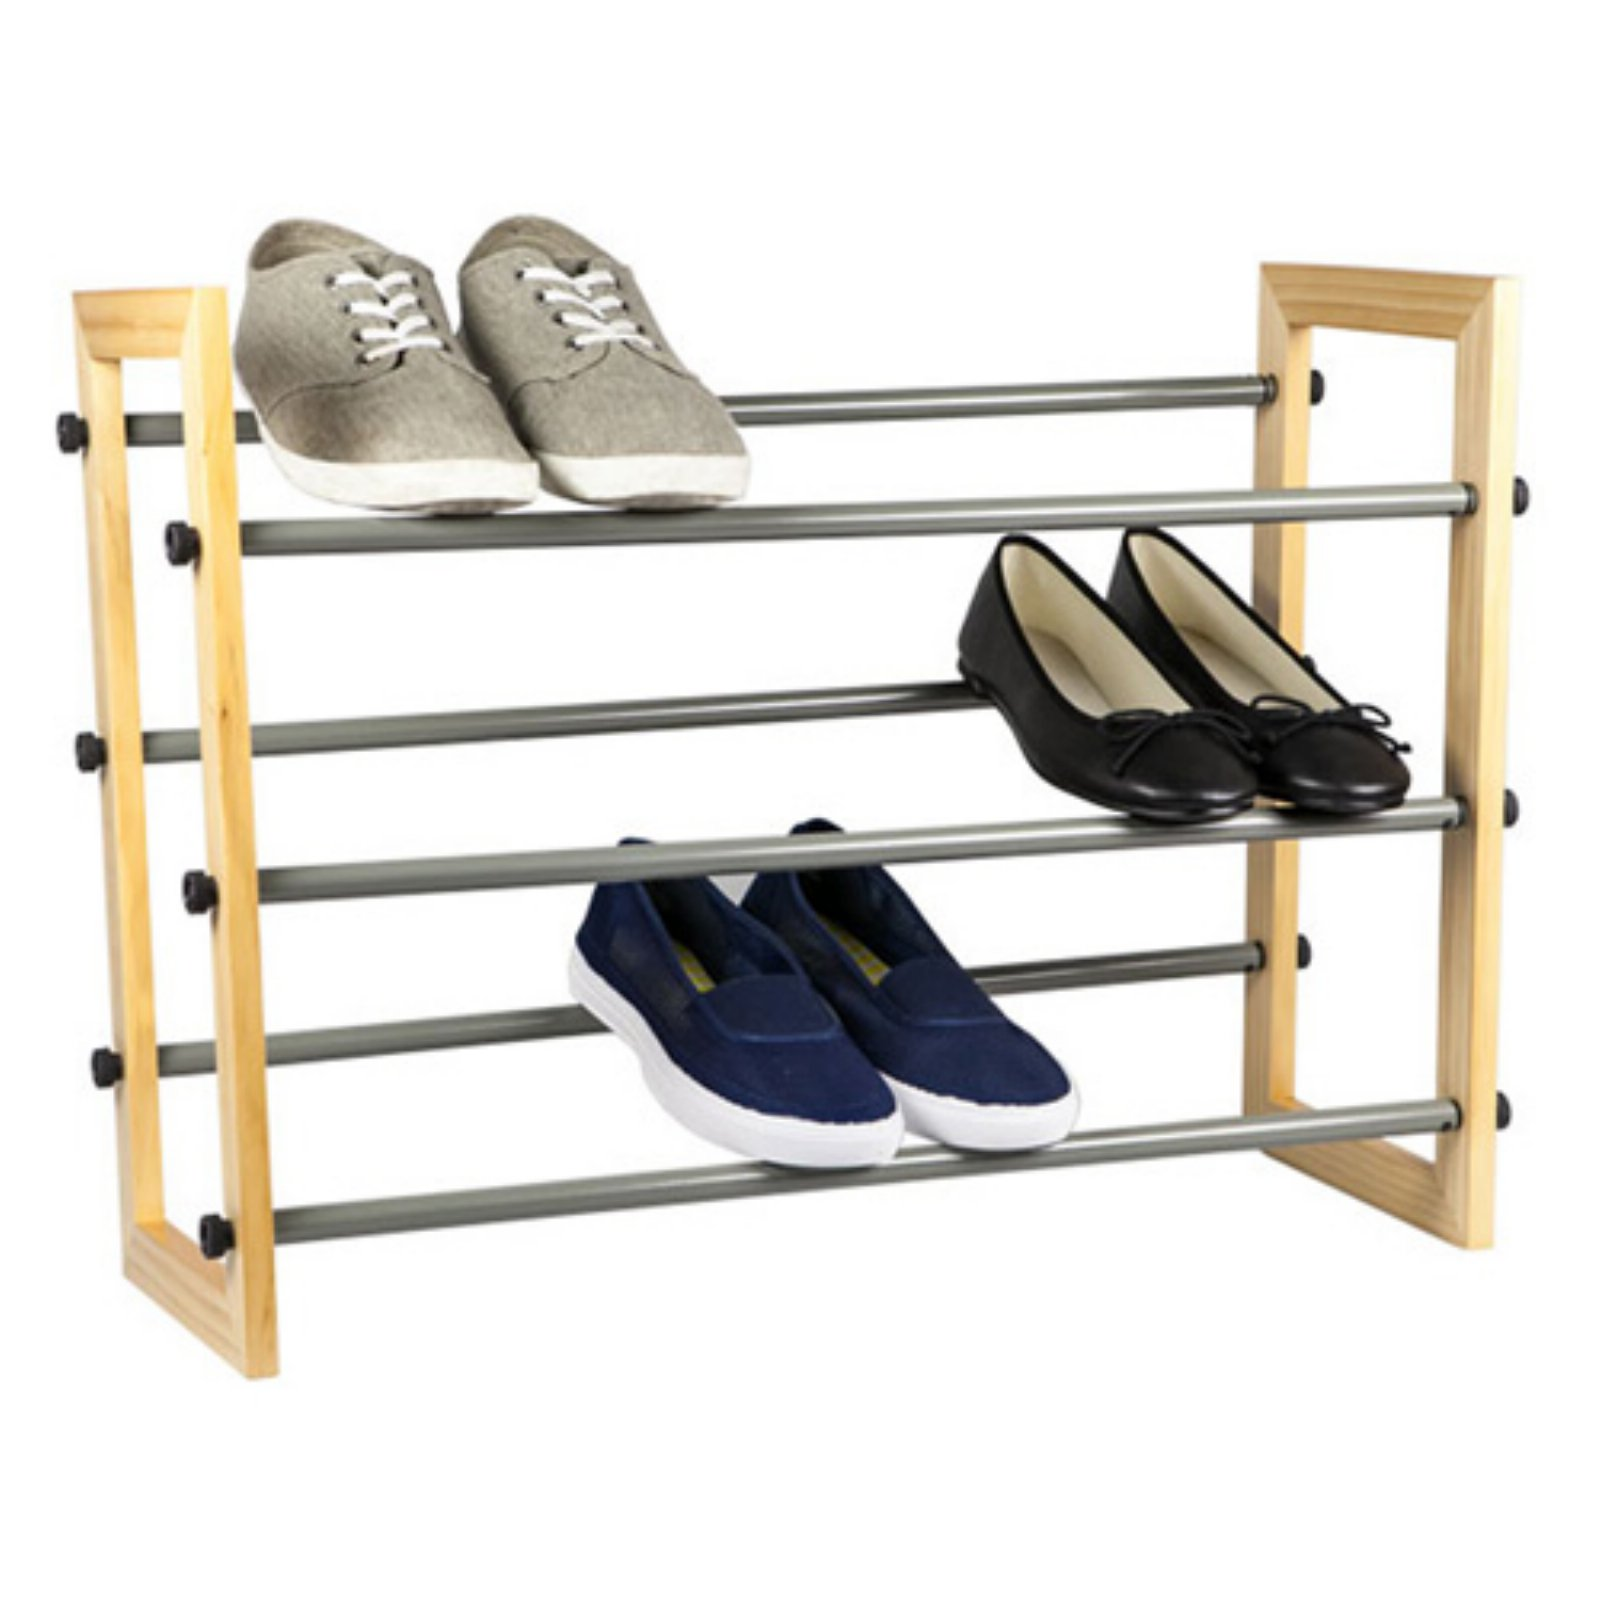 Sunbeam 3-Tier Expandable Shoe Rack with Wood Panel